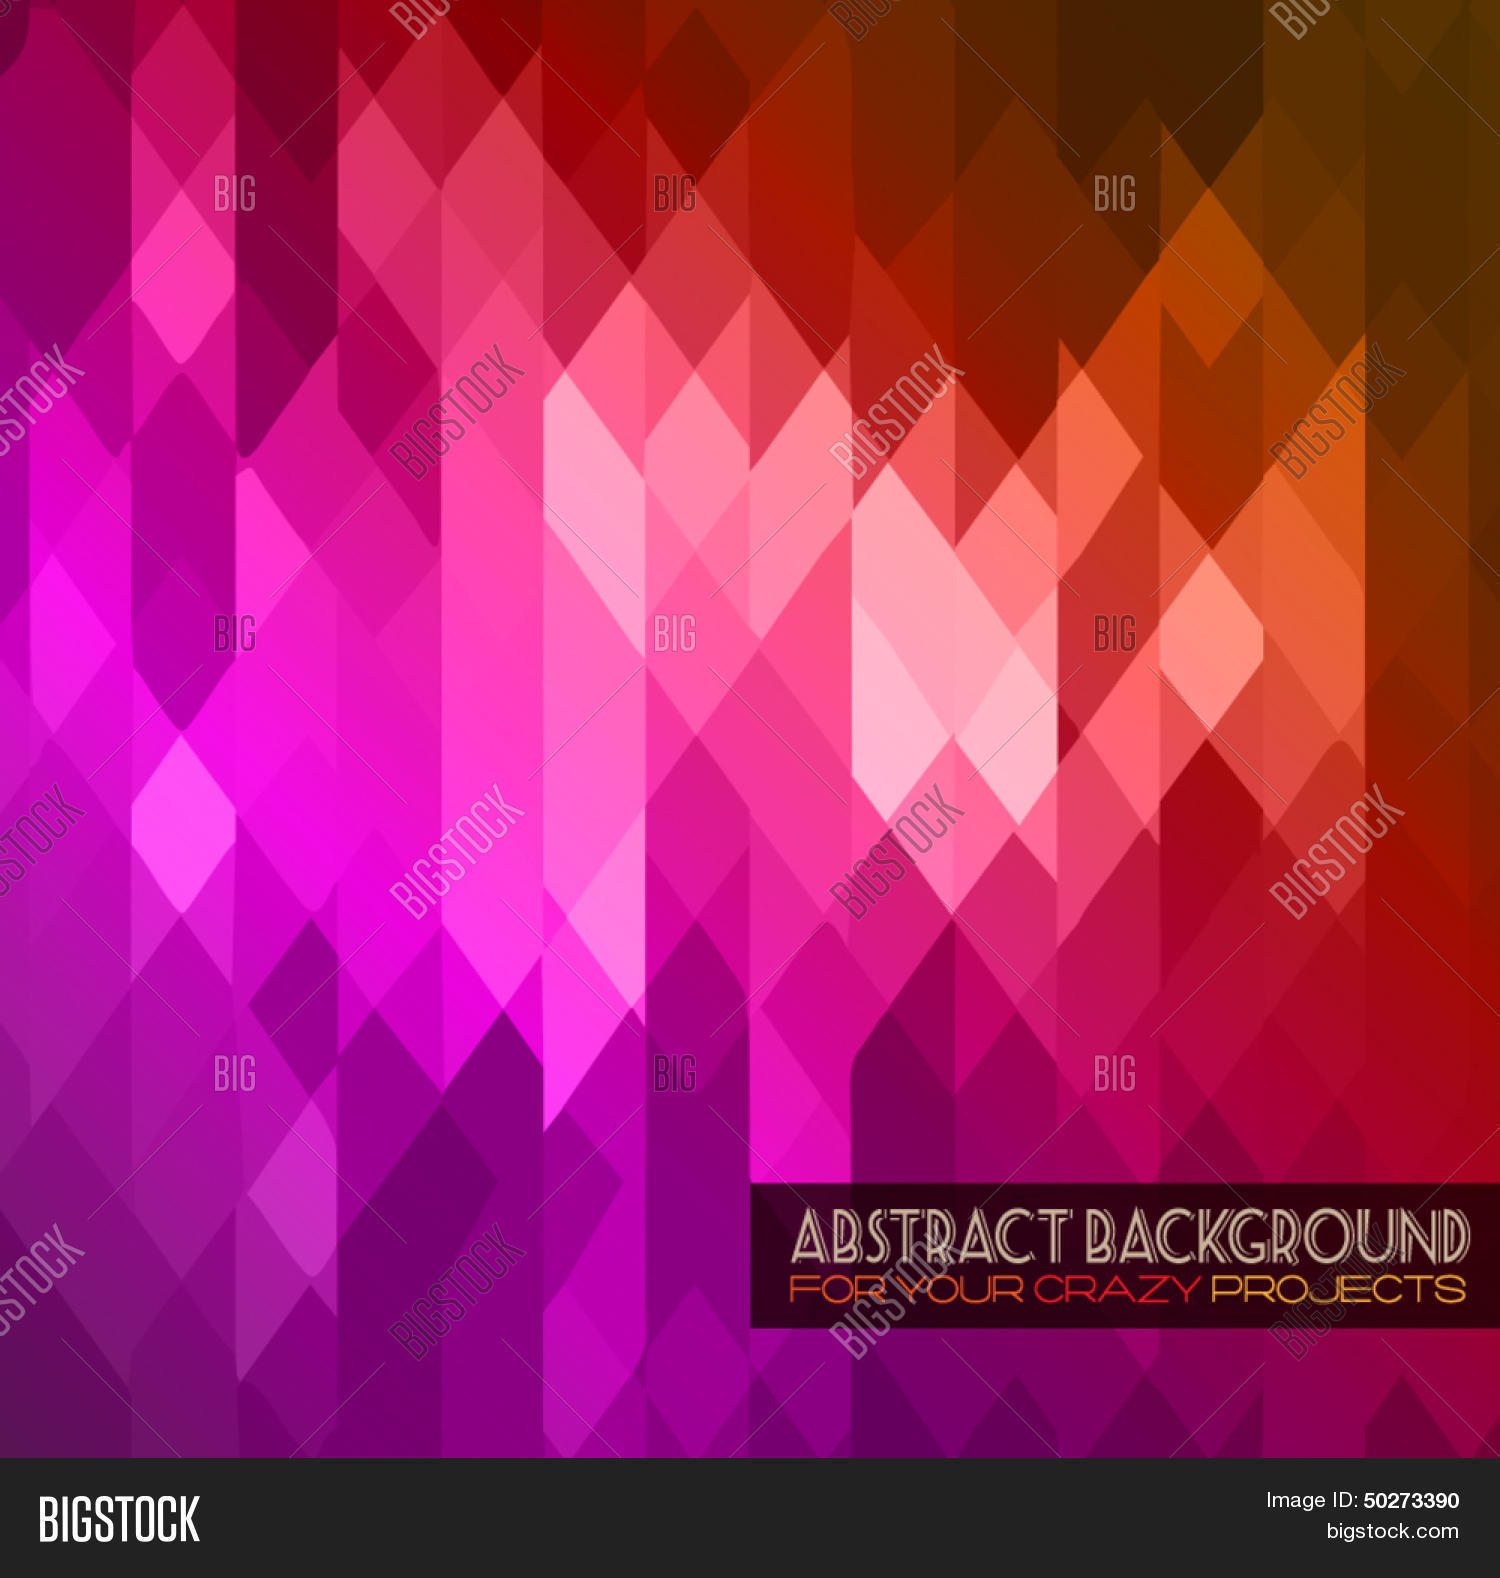 Disco Club Flyer Template. Abstract Background To Use For Music Event  Posters Or Album Covers  Club Flyer Background